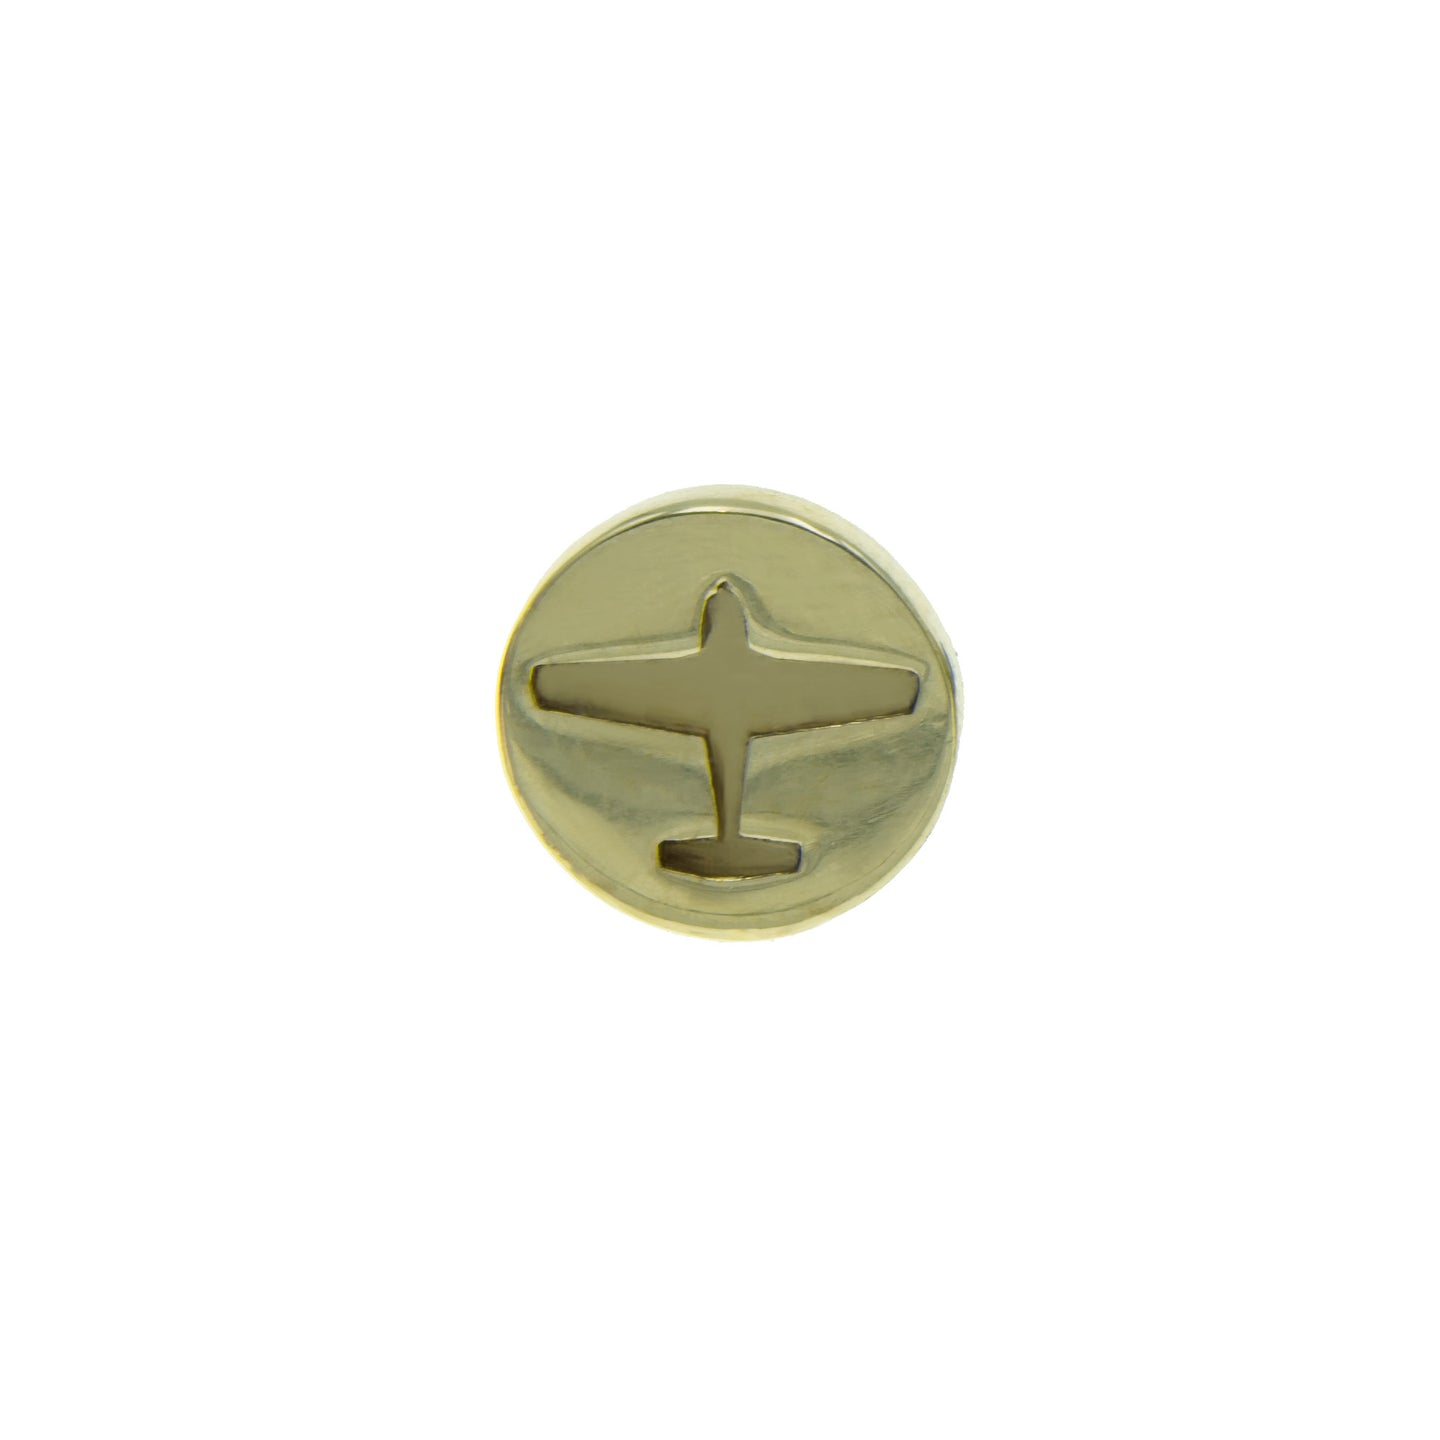 Plane lapel pin - The Collective Dublin